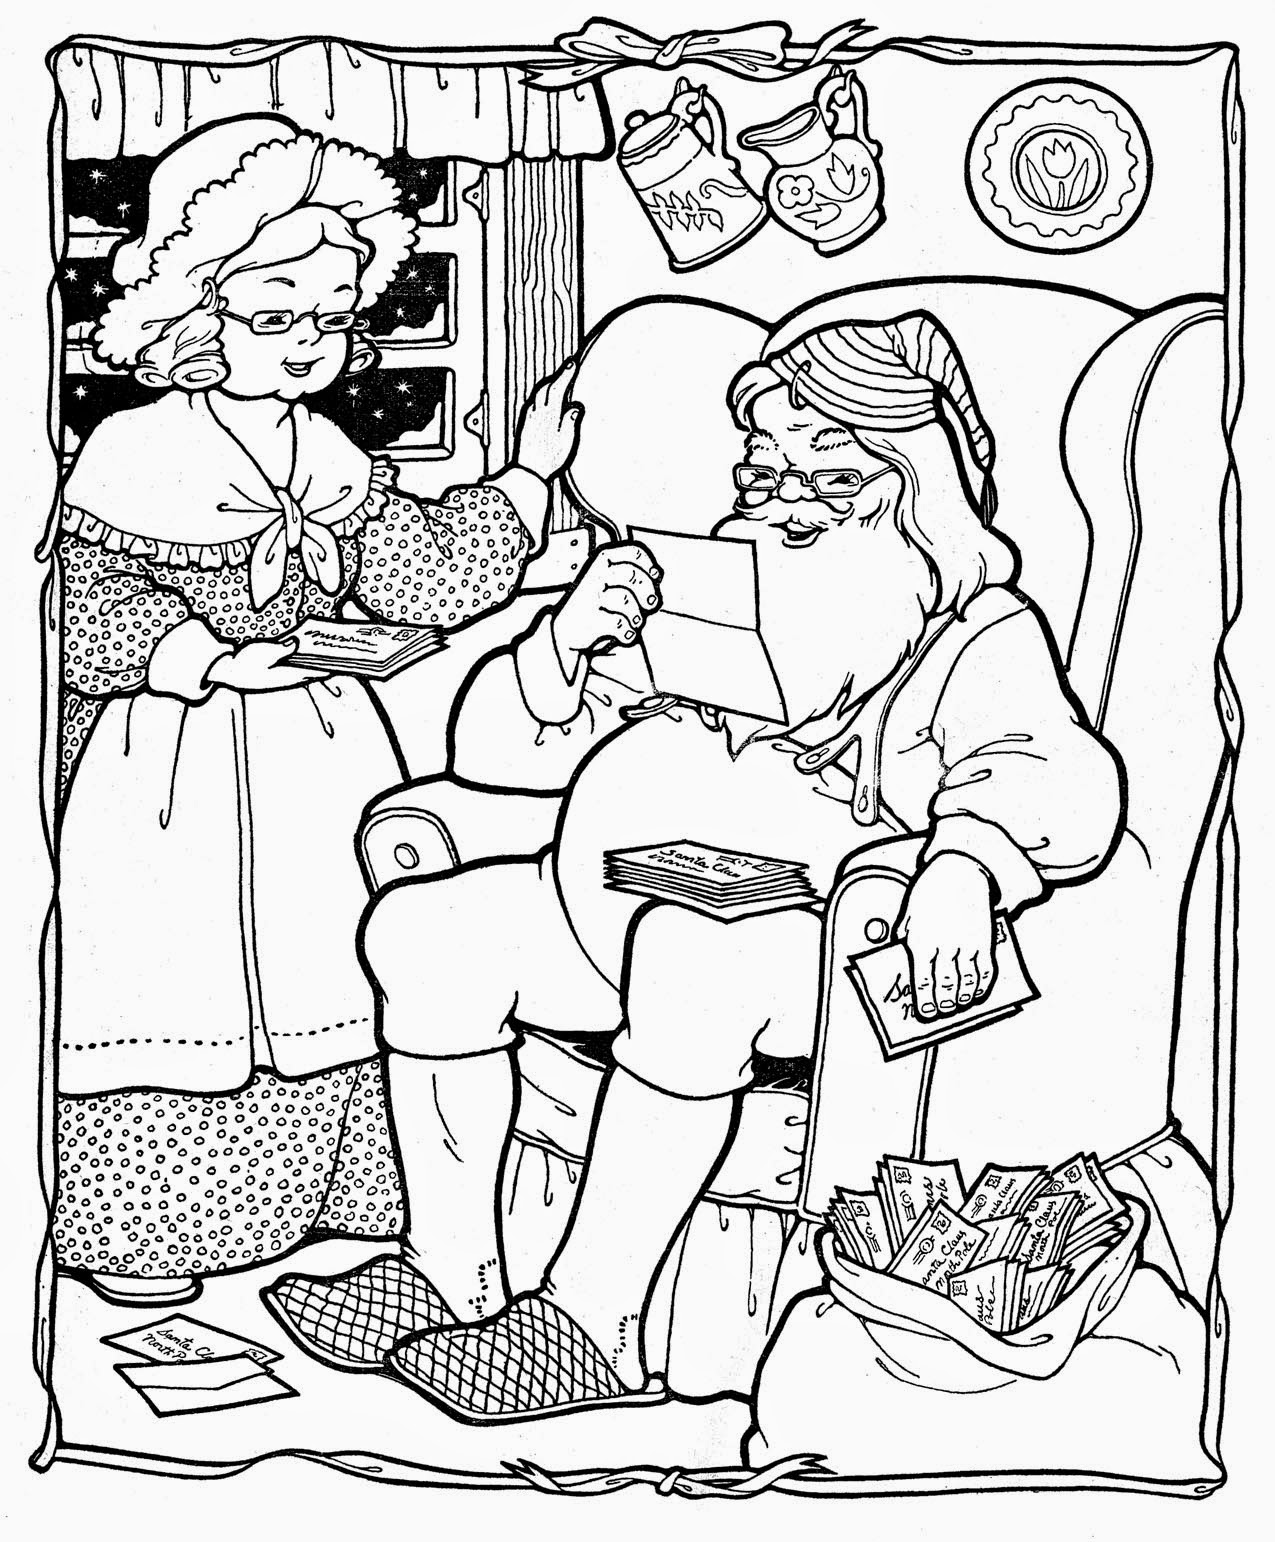 Chrismas coloring pages clip art coloring.filminspector.com